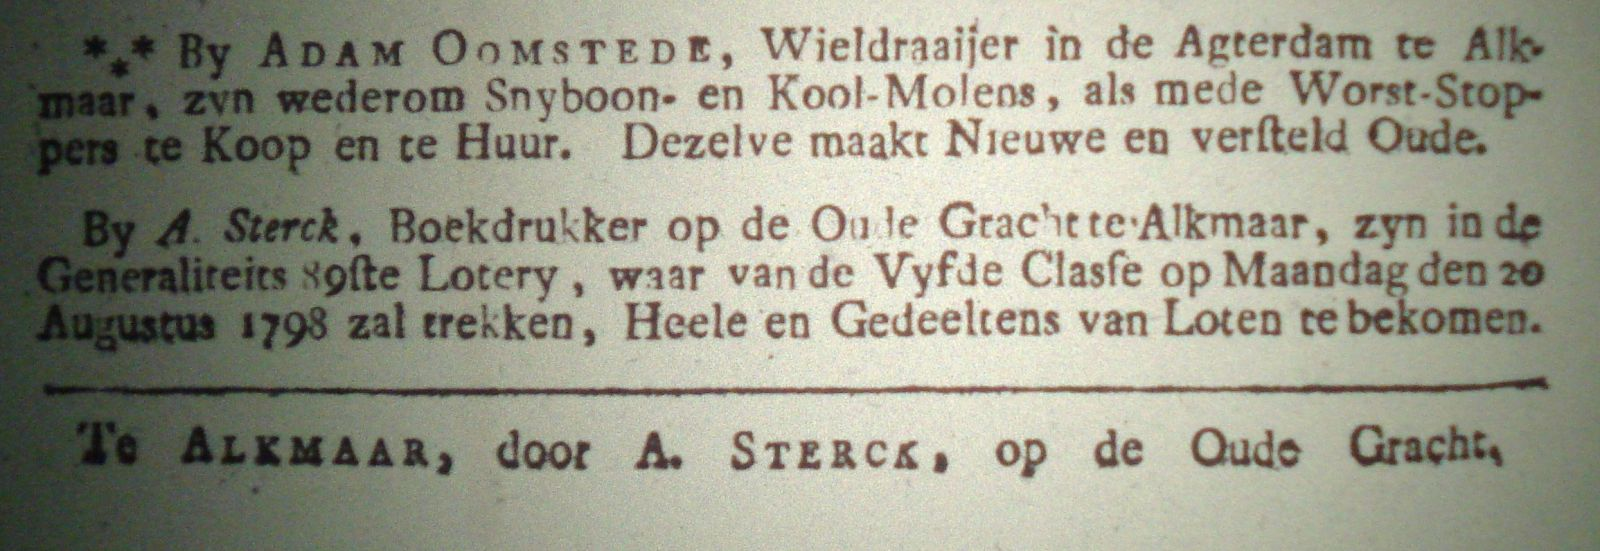 Wieldraaier Adam Oomstede adverteert in 1798 in de AC.